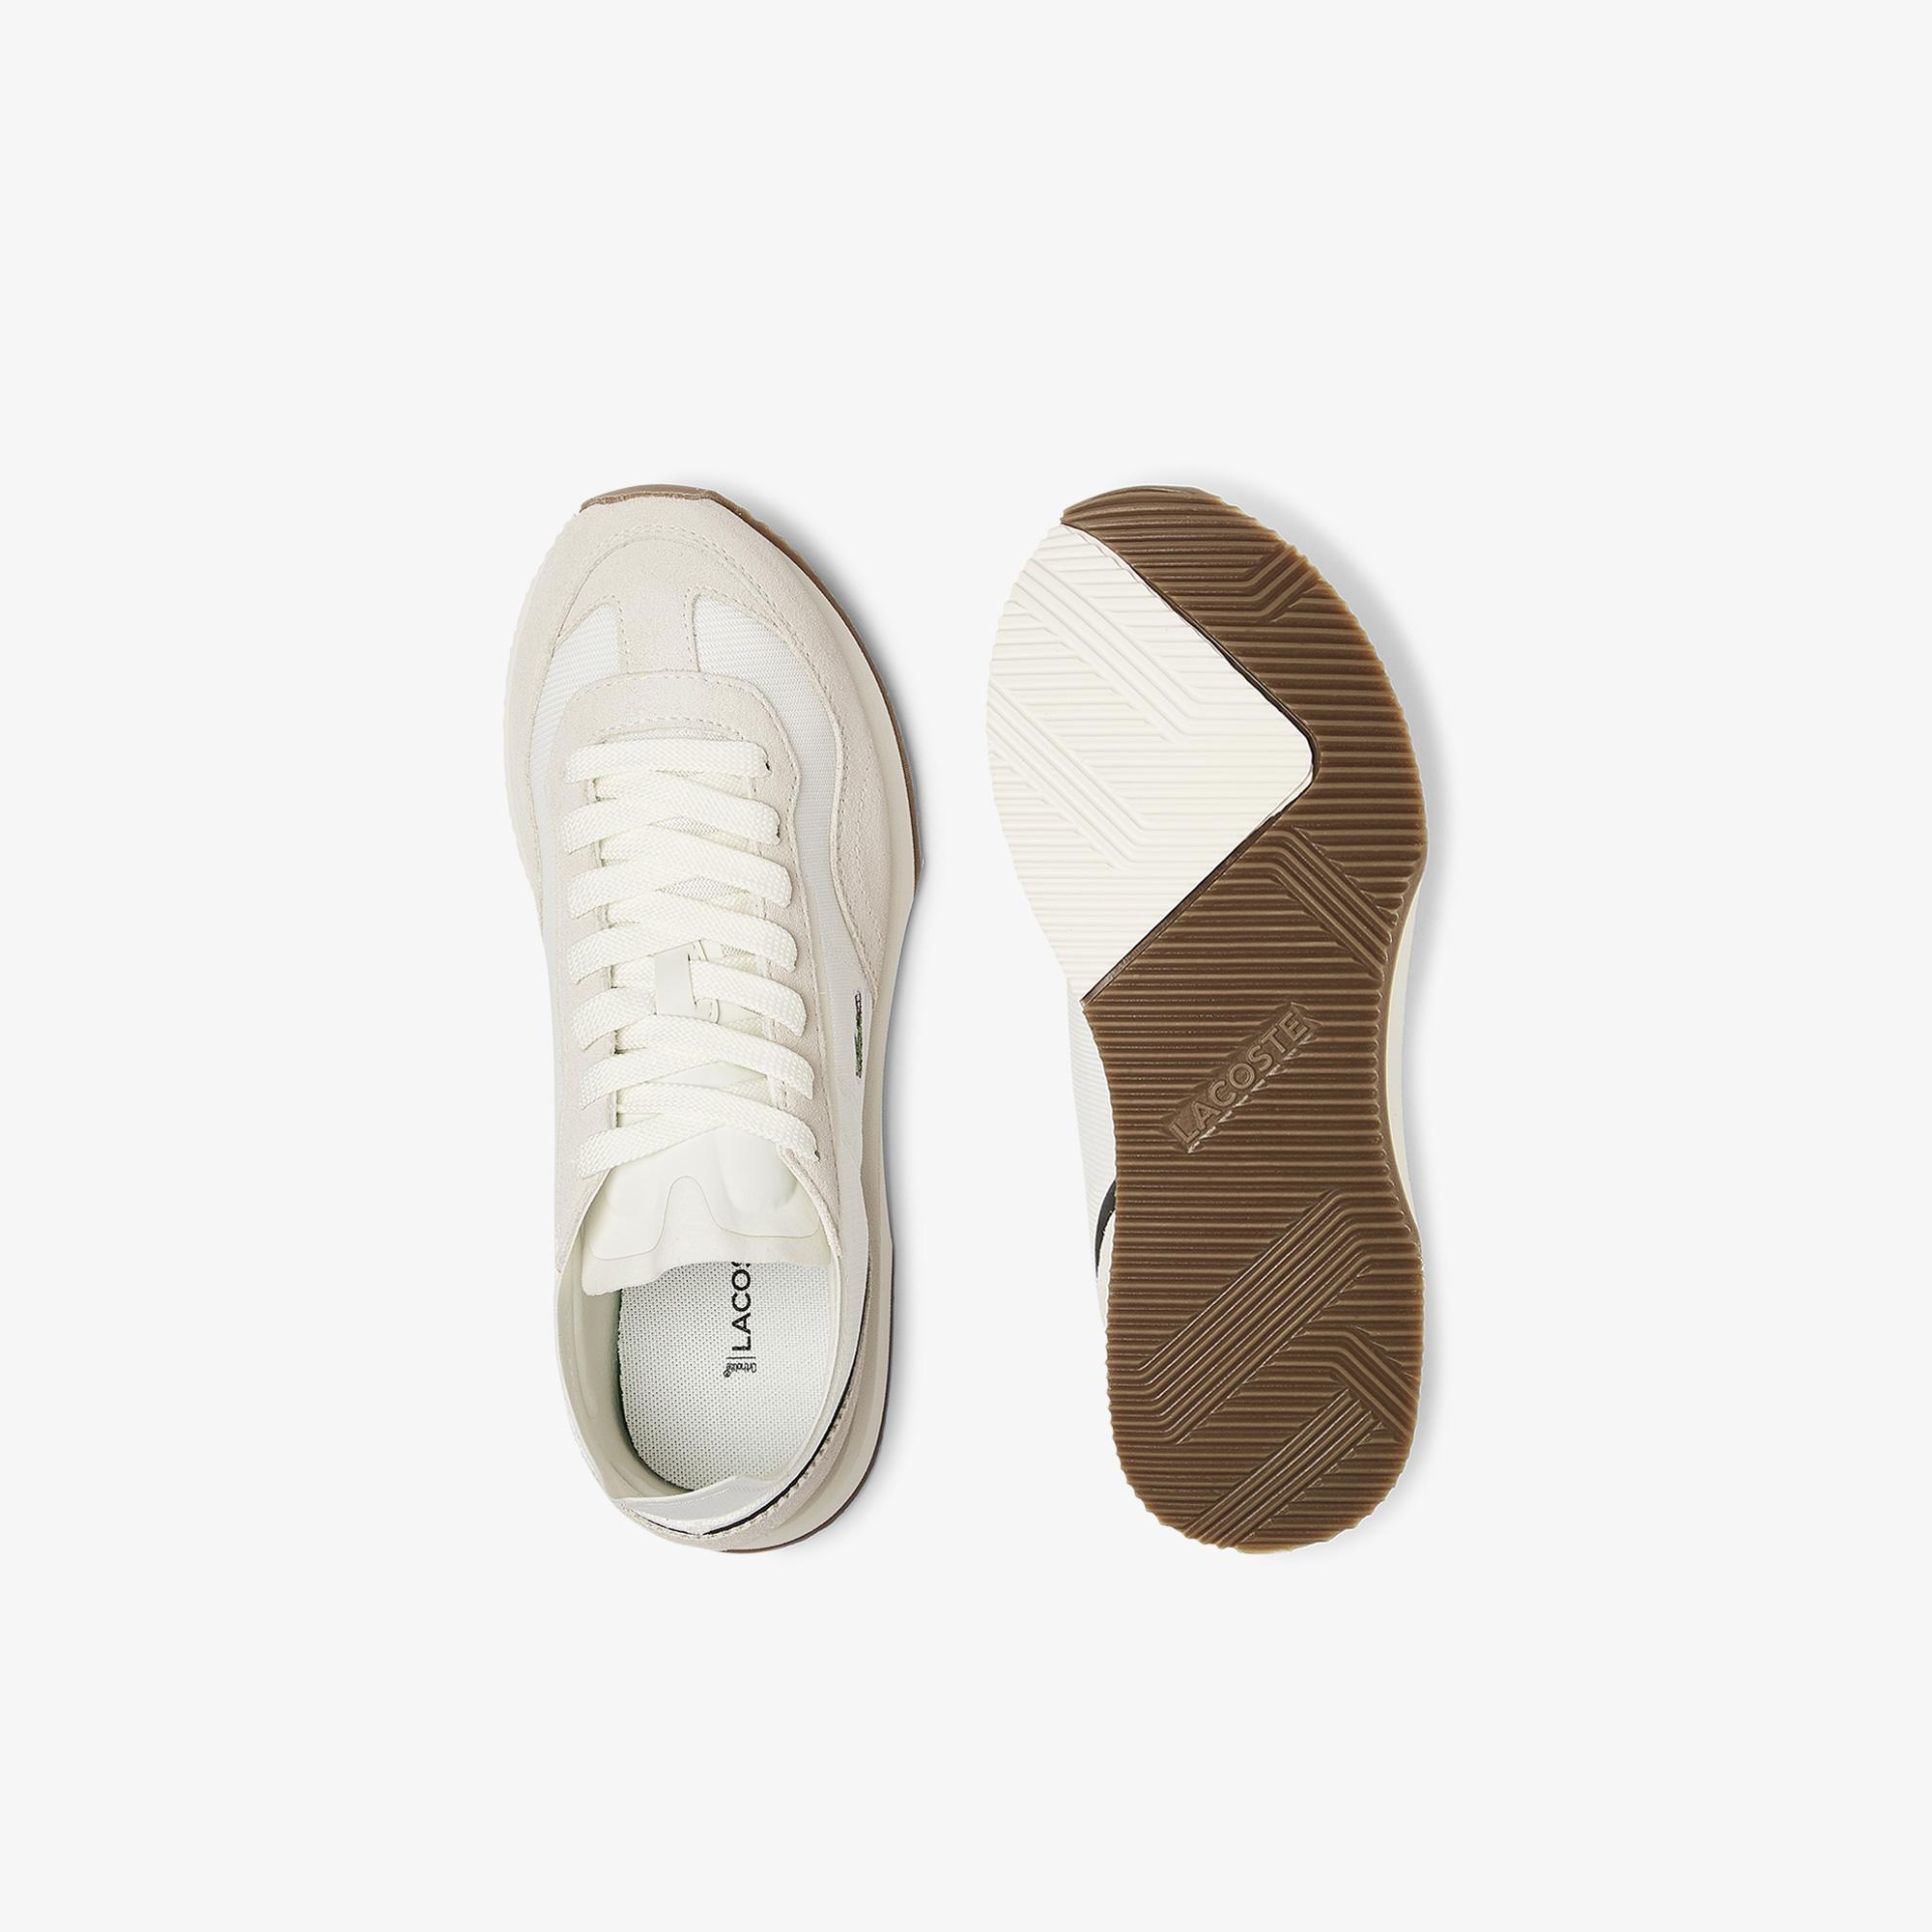 Lacoste Women's Match Break 0721 1 Sfa Shoes